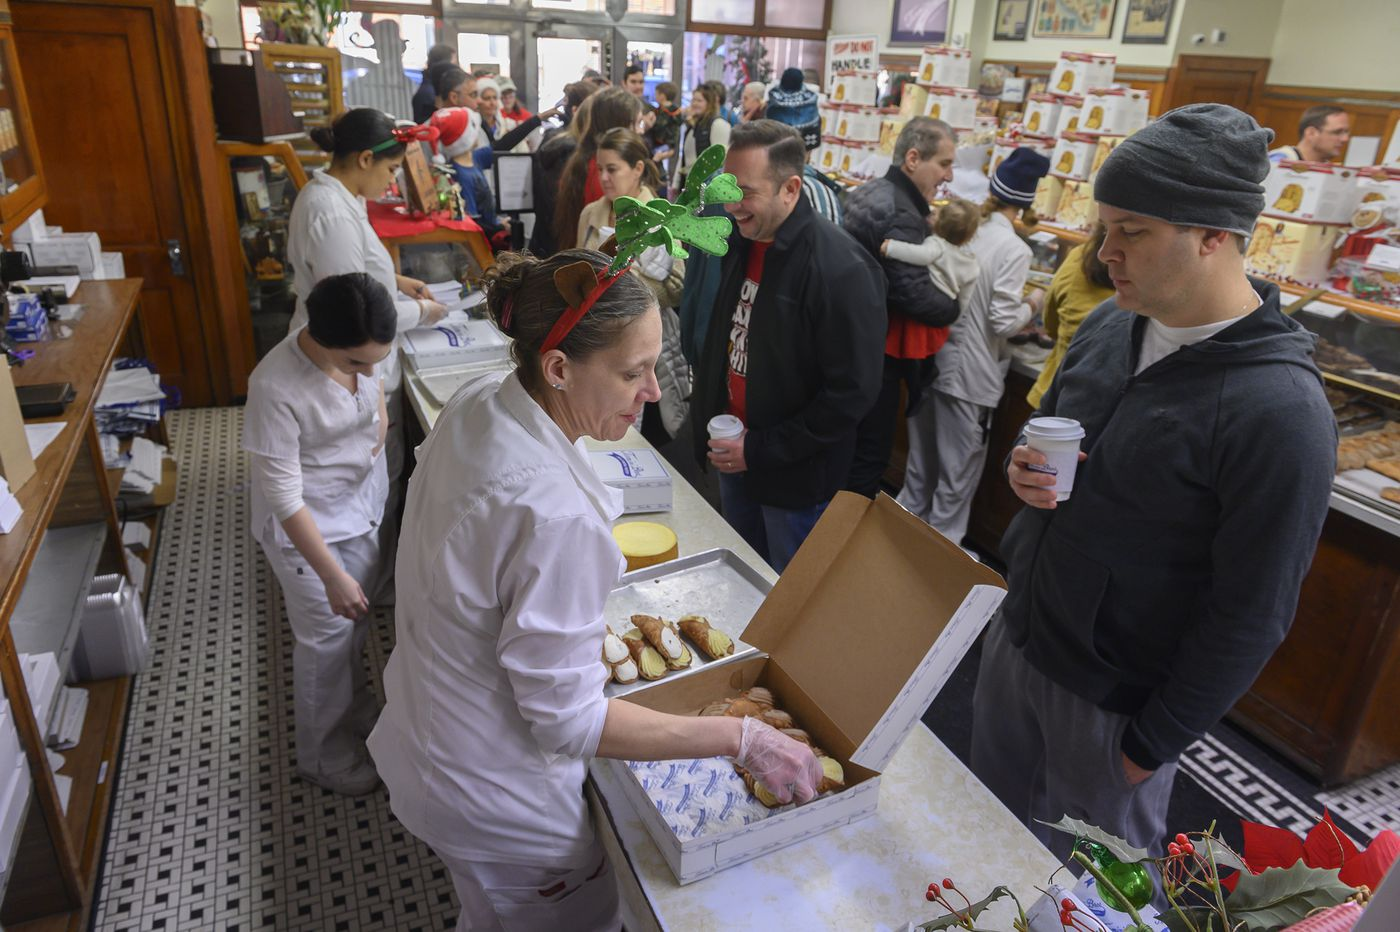 Termini Bros. Bakery always has a crowd on Christmas Eve. This year, it'll benefit the South Philly explosion victims.